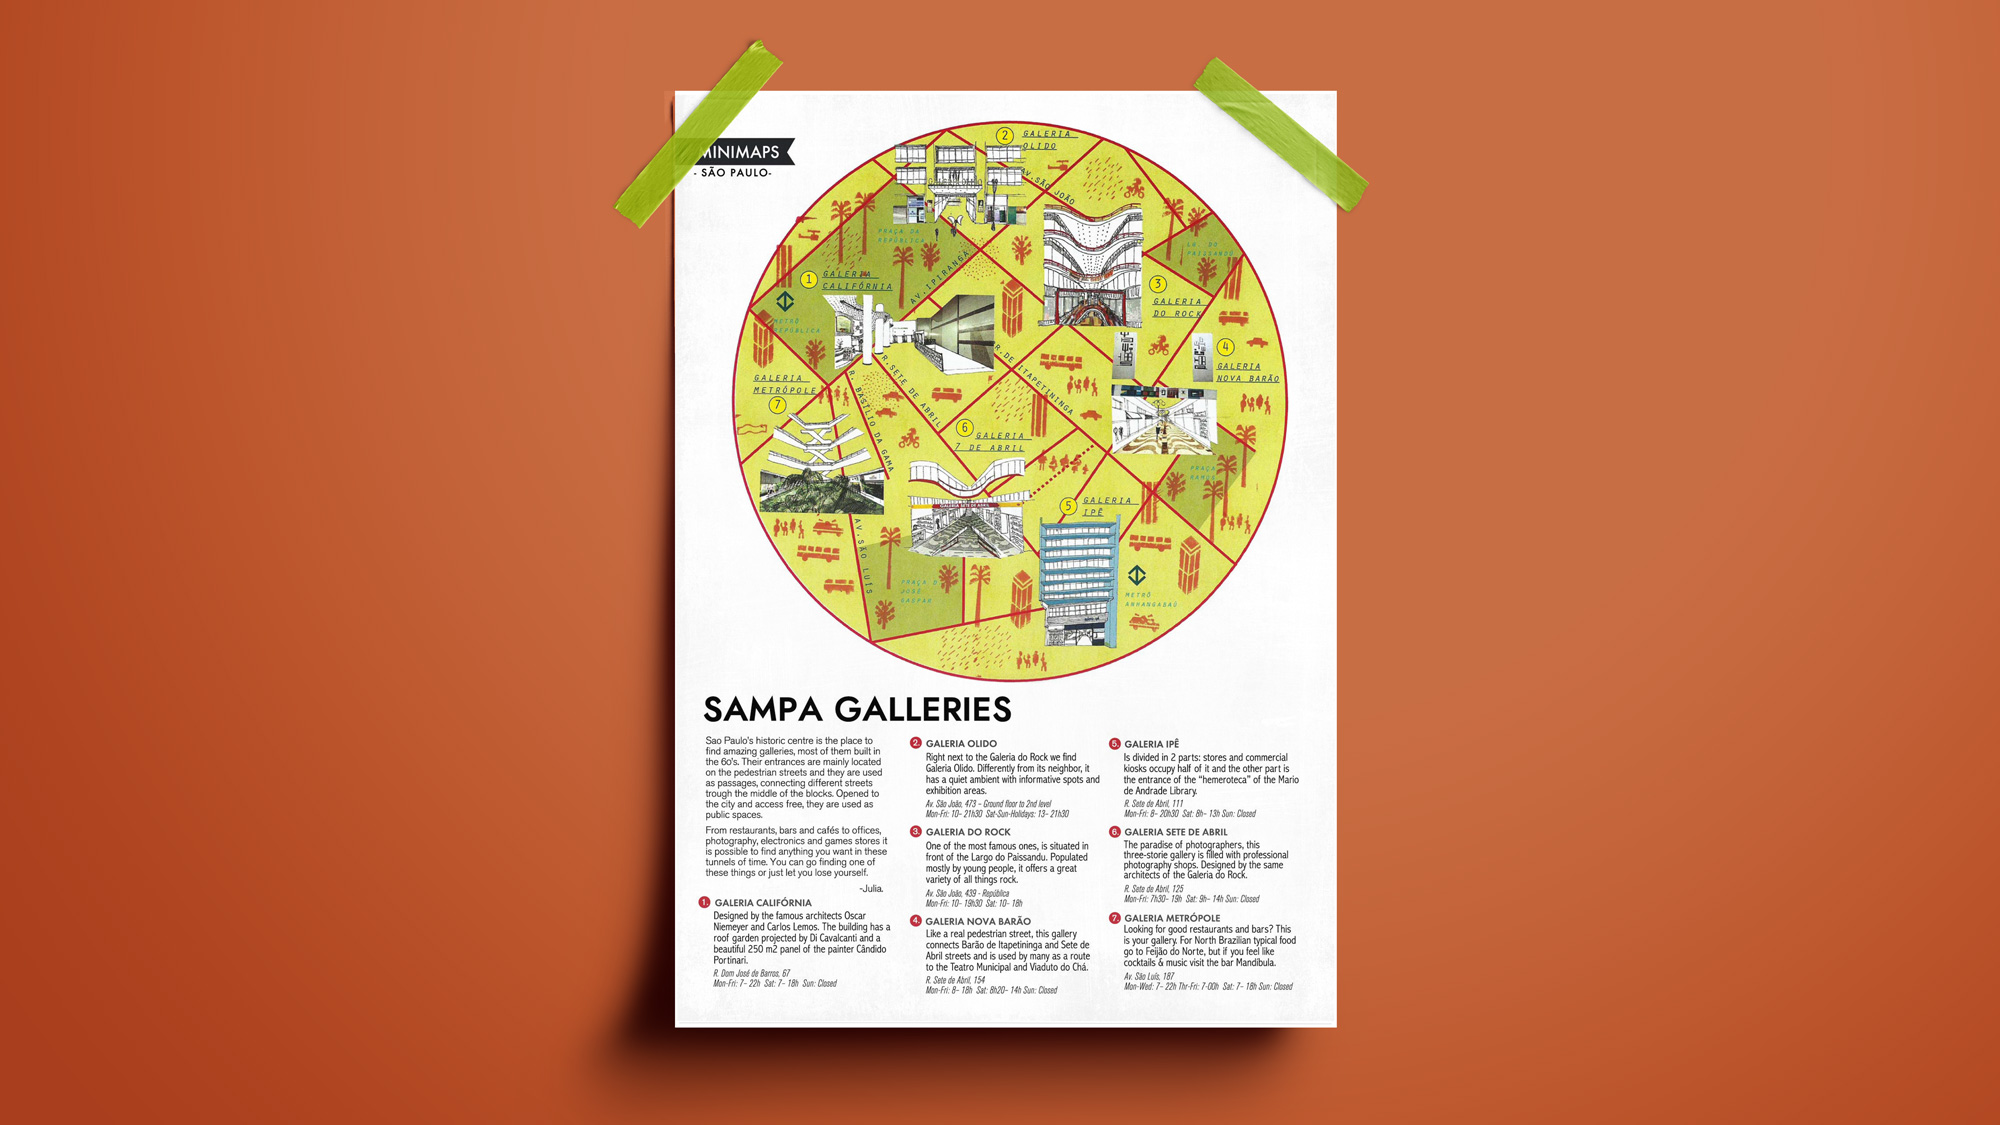 Sampa-Galleries_Mockup_2019